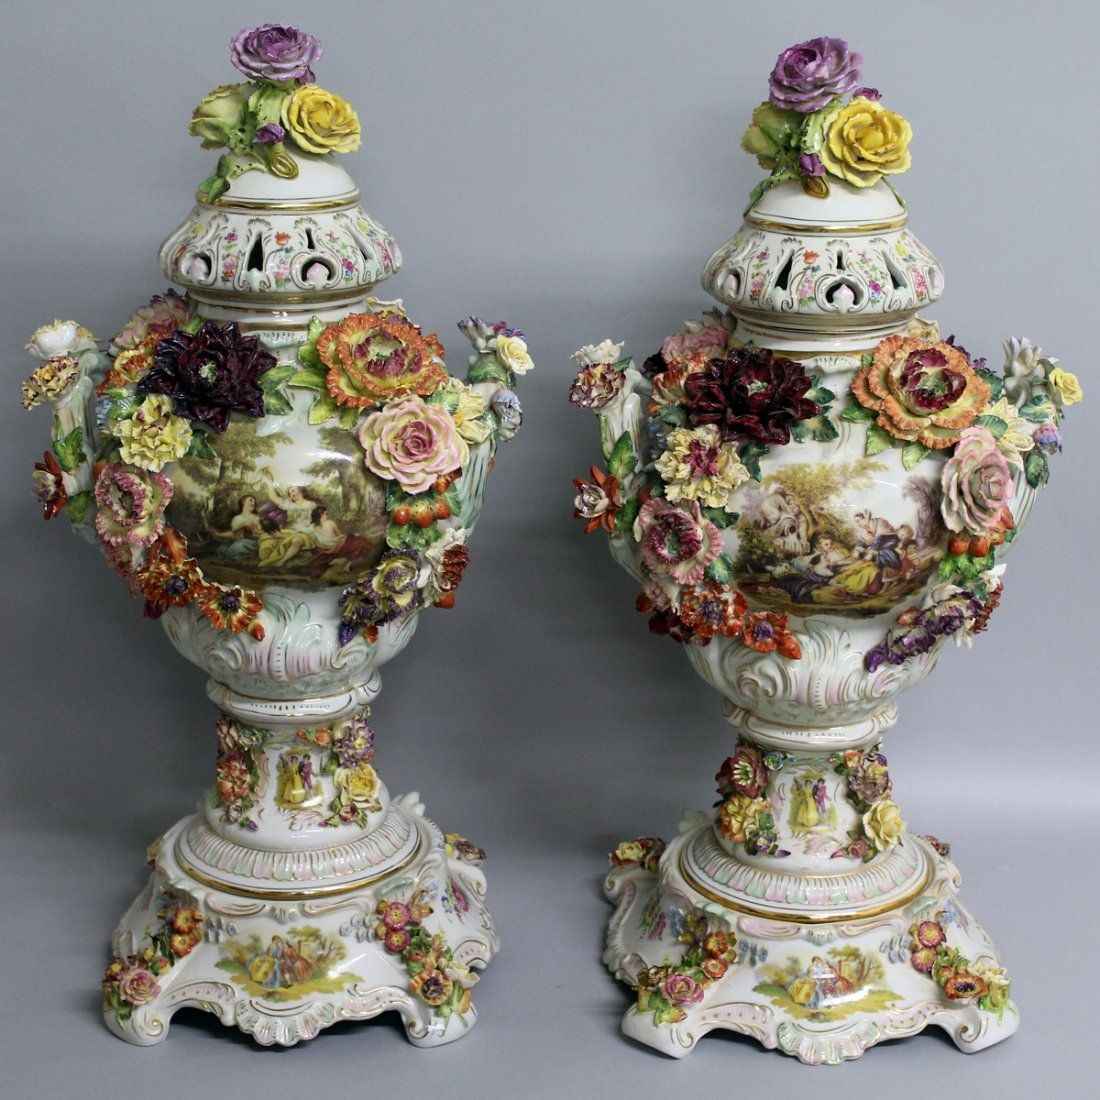 149.  A SUPERB LARGE PAIR OF DRESDEN TWO HANDLED URN